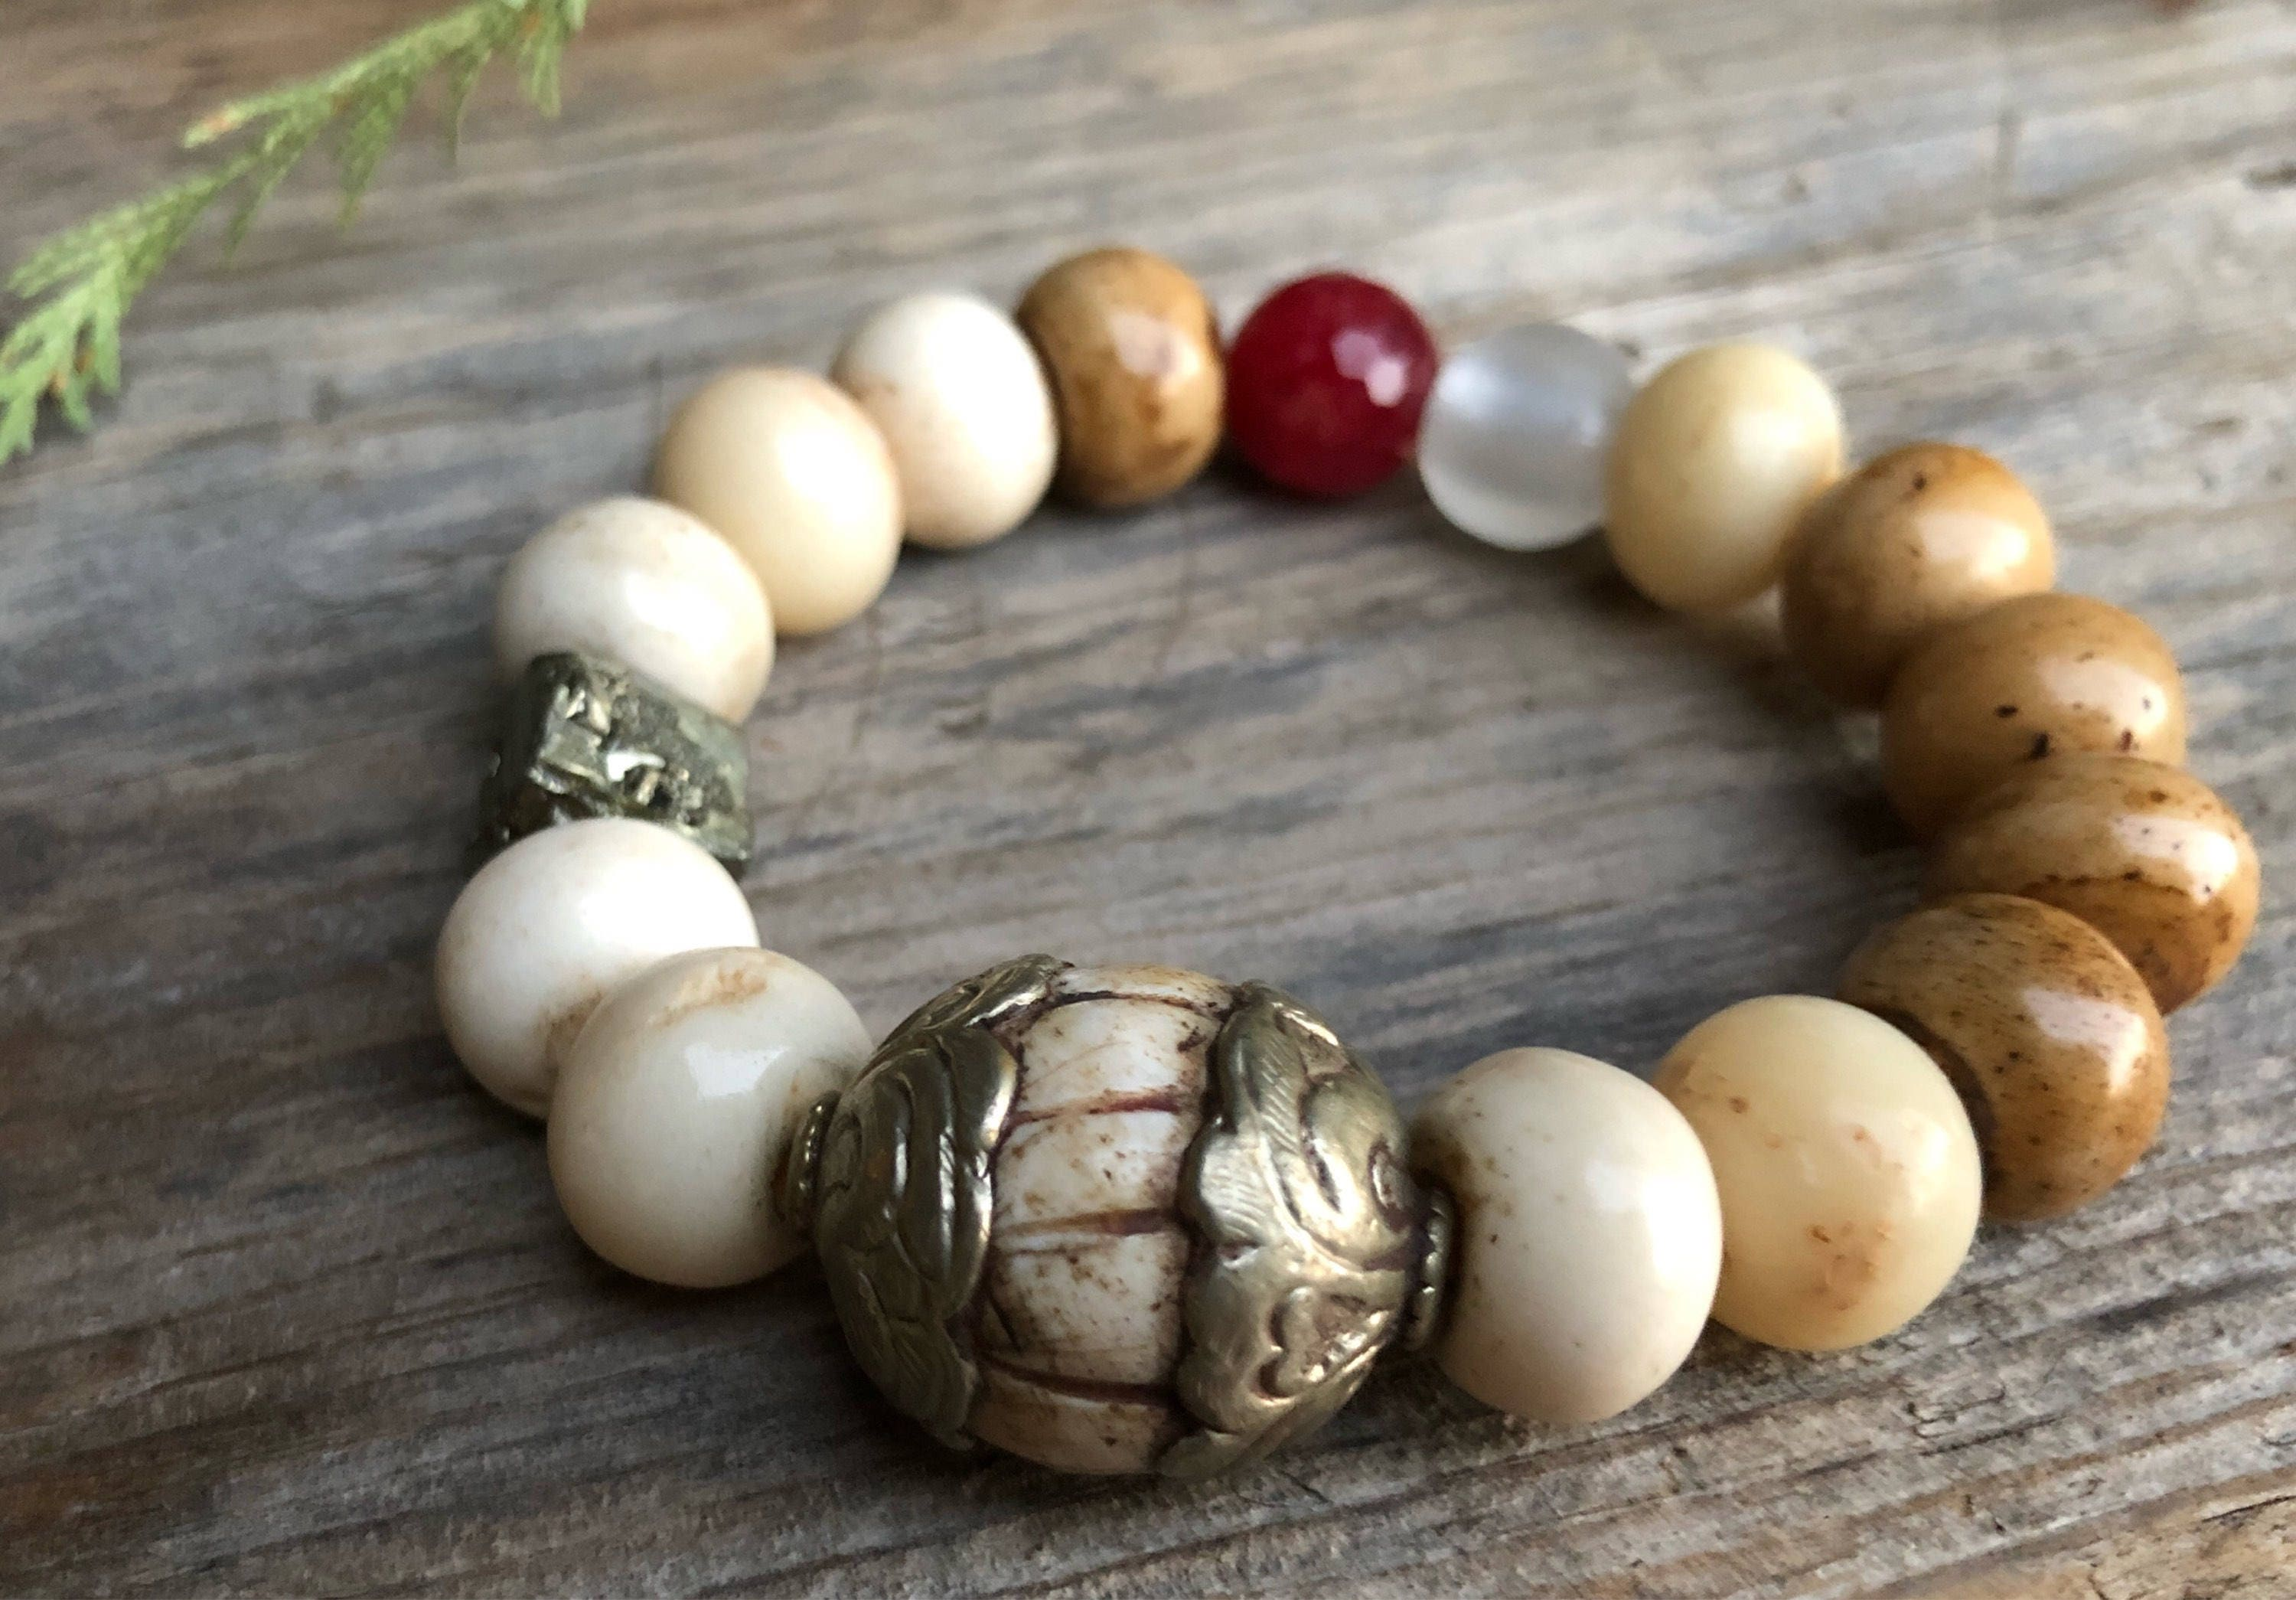 Old Tibet Trade Artisan Bead Paired With Hand Carved Bone Faceted Jade Raw Pyrite Gemstone Beaded Buddha Intention Mala Bracelet Mens Gifts